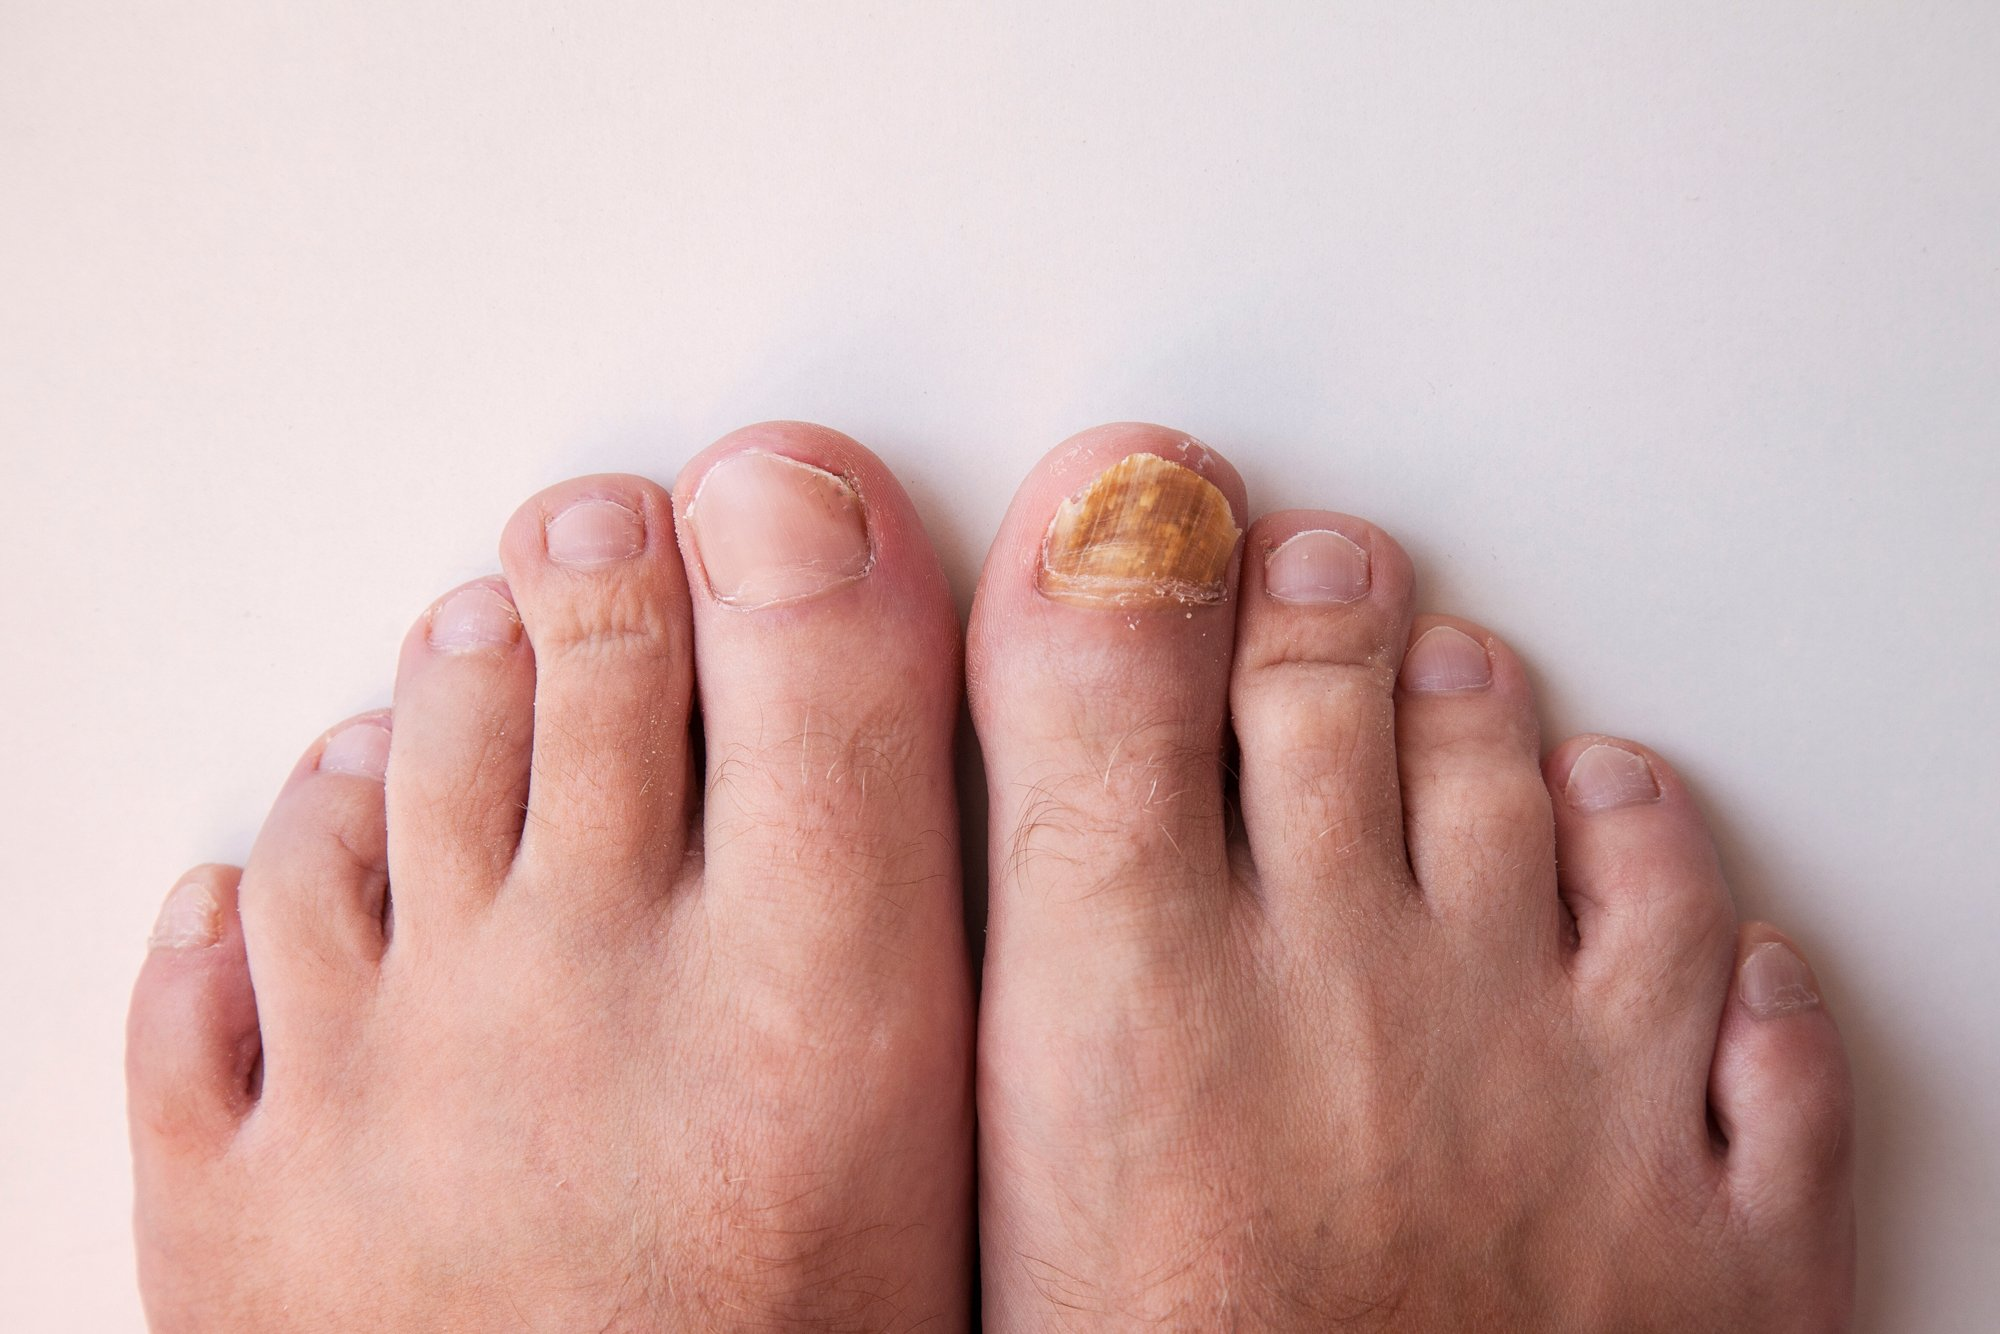 Feet with toenail fungus on the big right toe